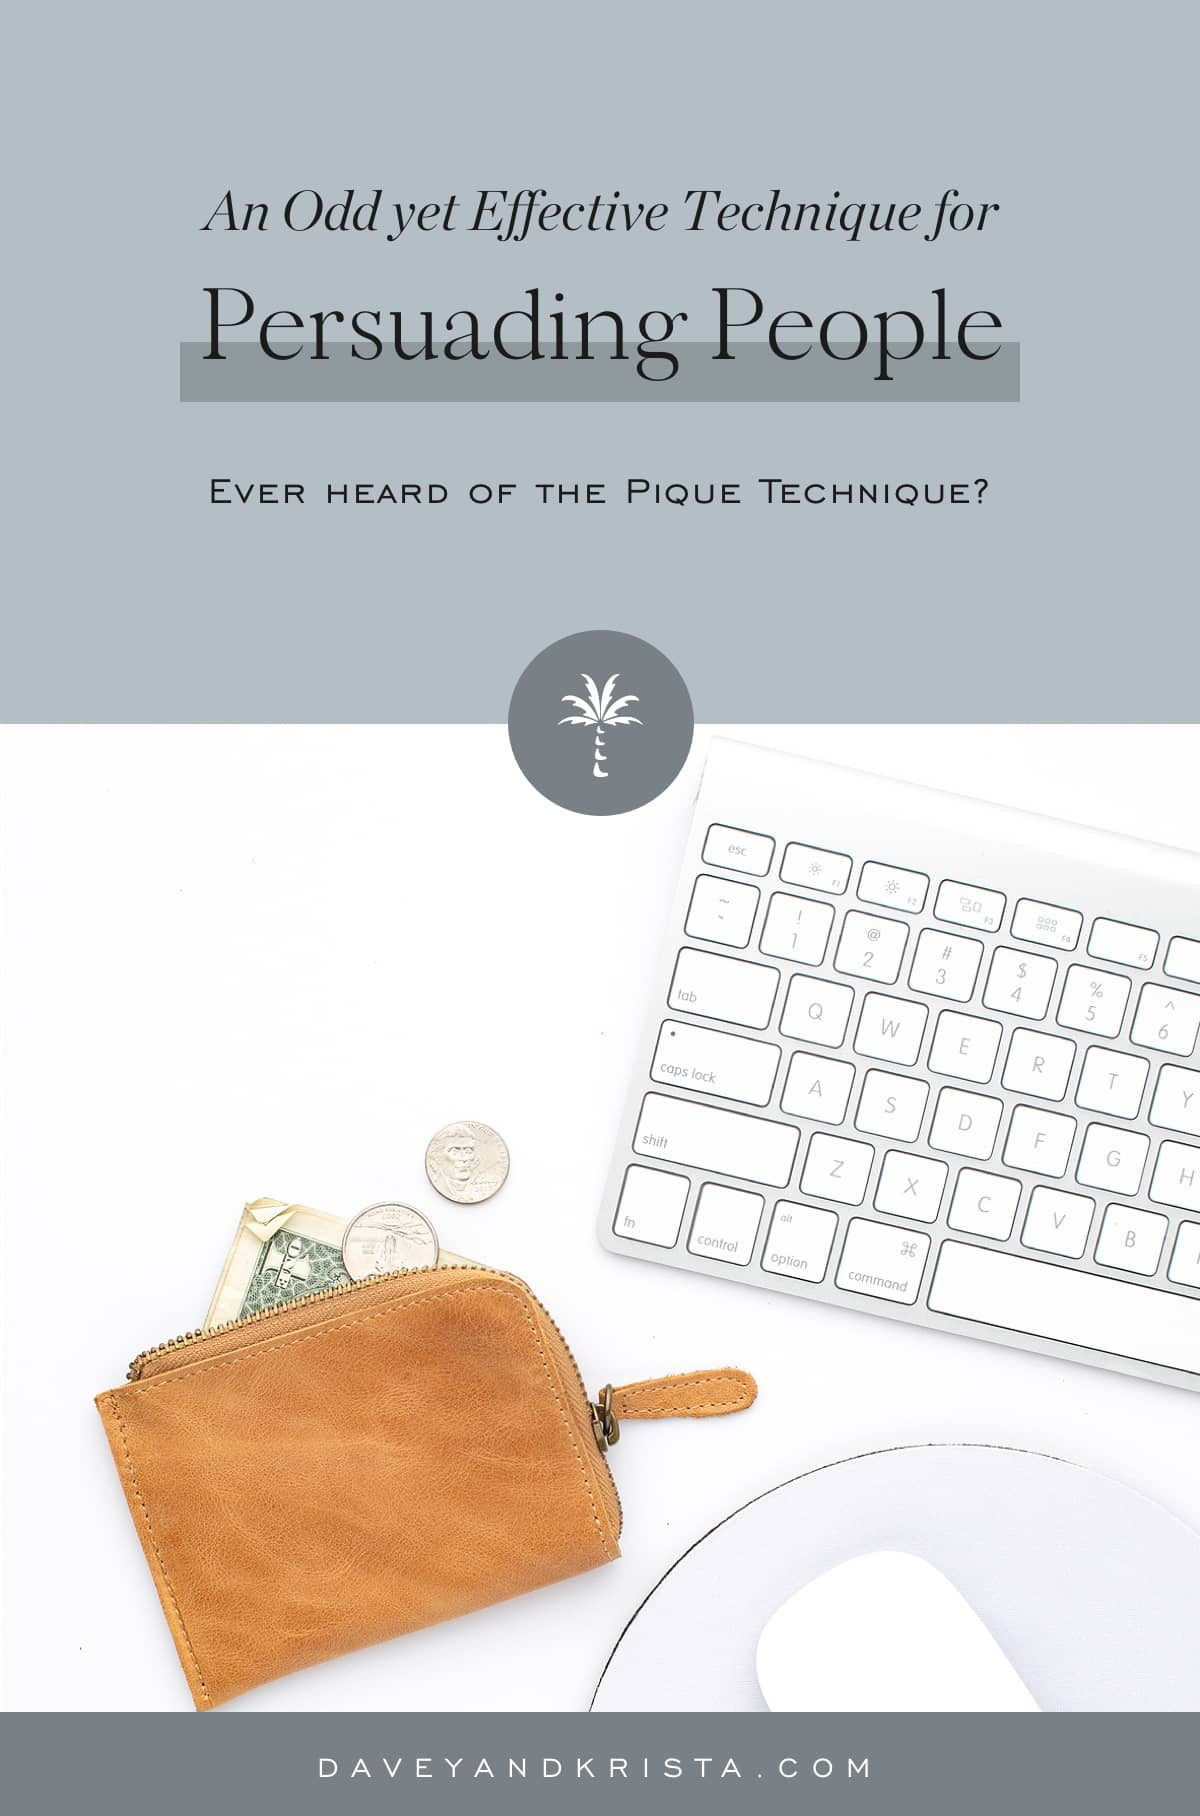 An Odd yet Effective Technique for Persuading People | Davey & Krista